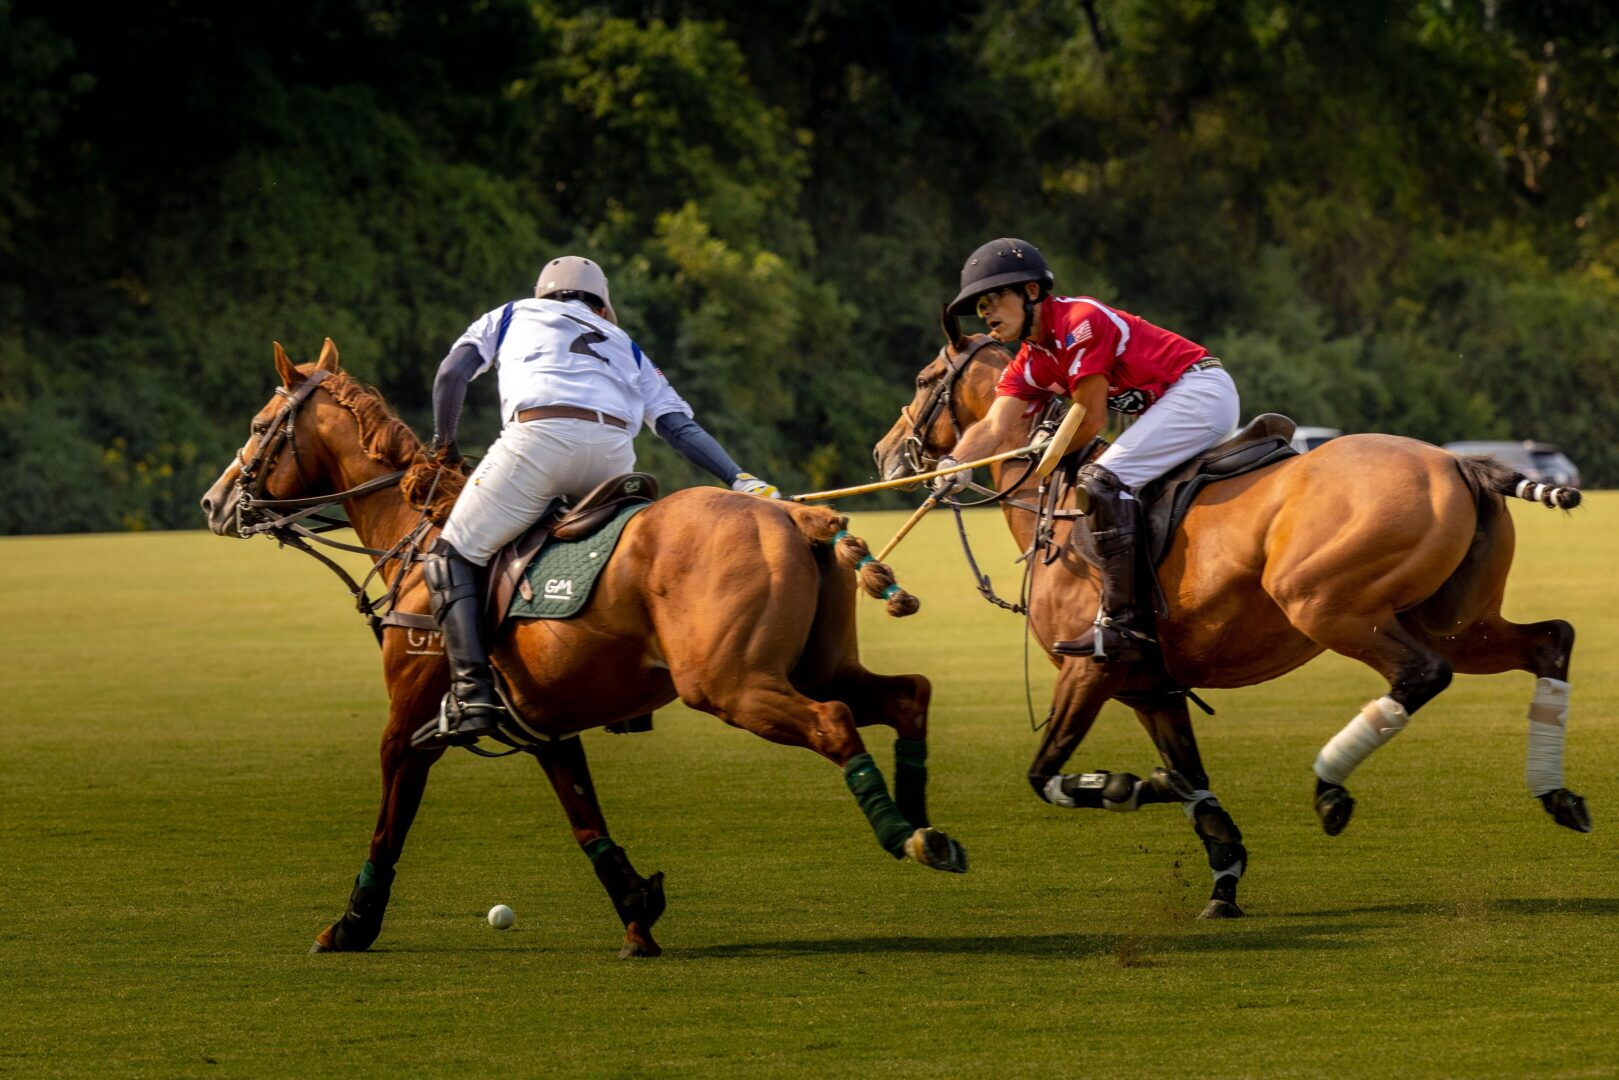 Chukkers for Charity Event Franklin Polo Action